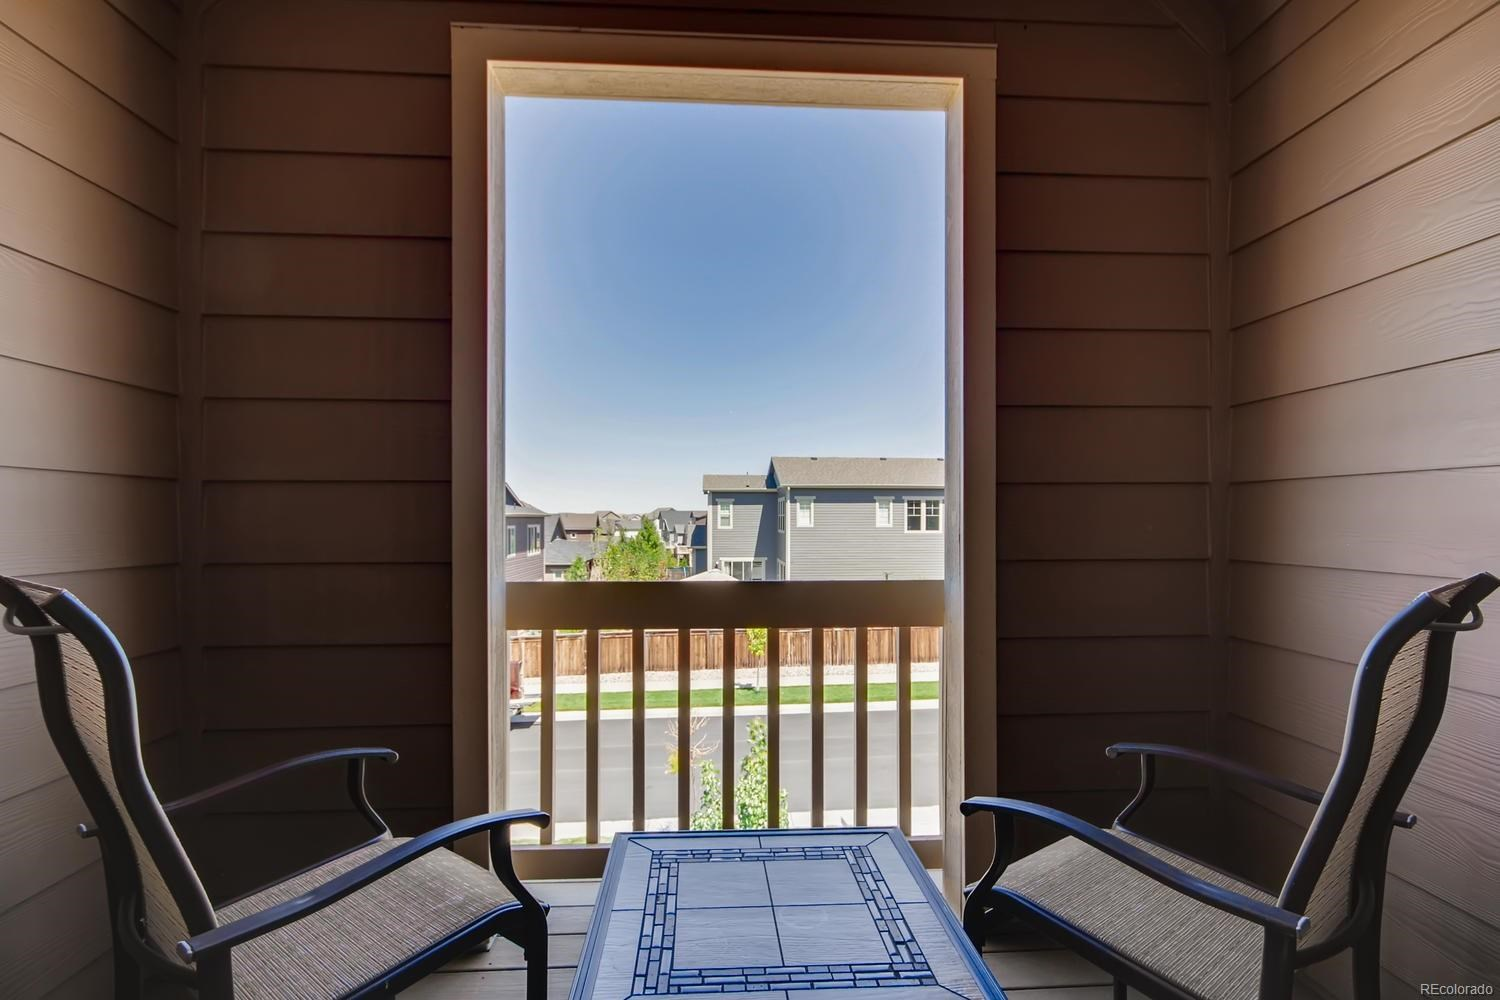 MLS# 4445367 - 26 - 15795 Savory Circle, Parker, CO 80134